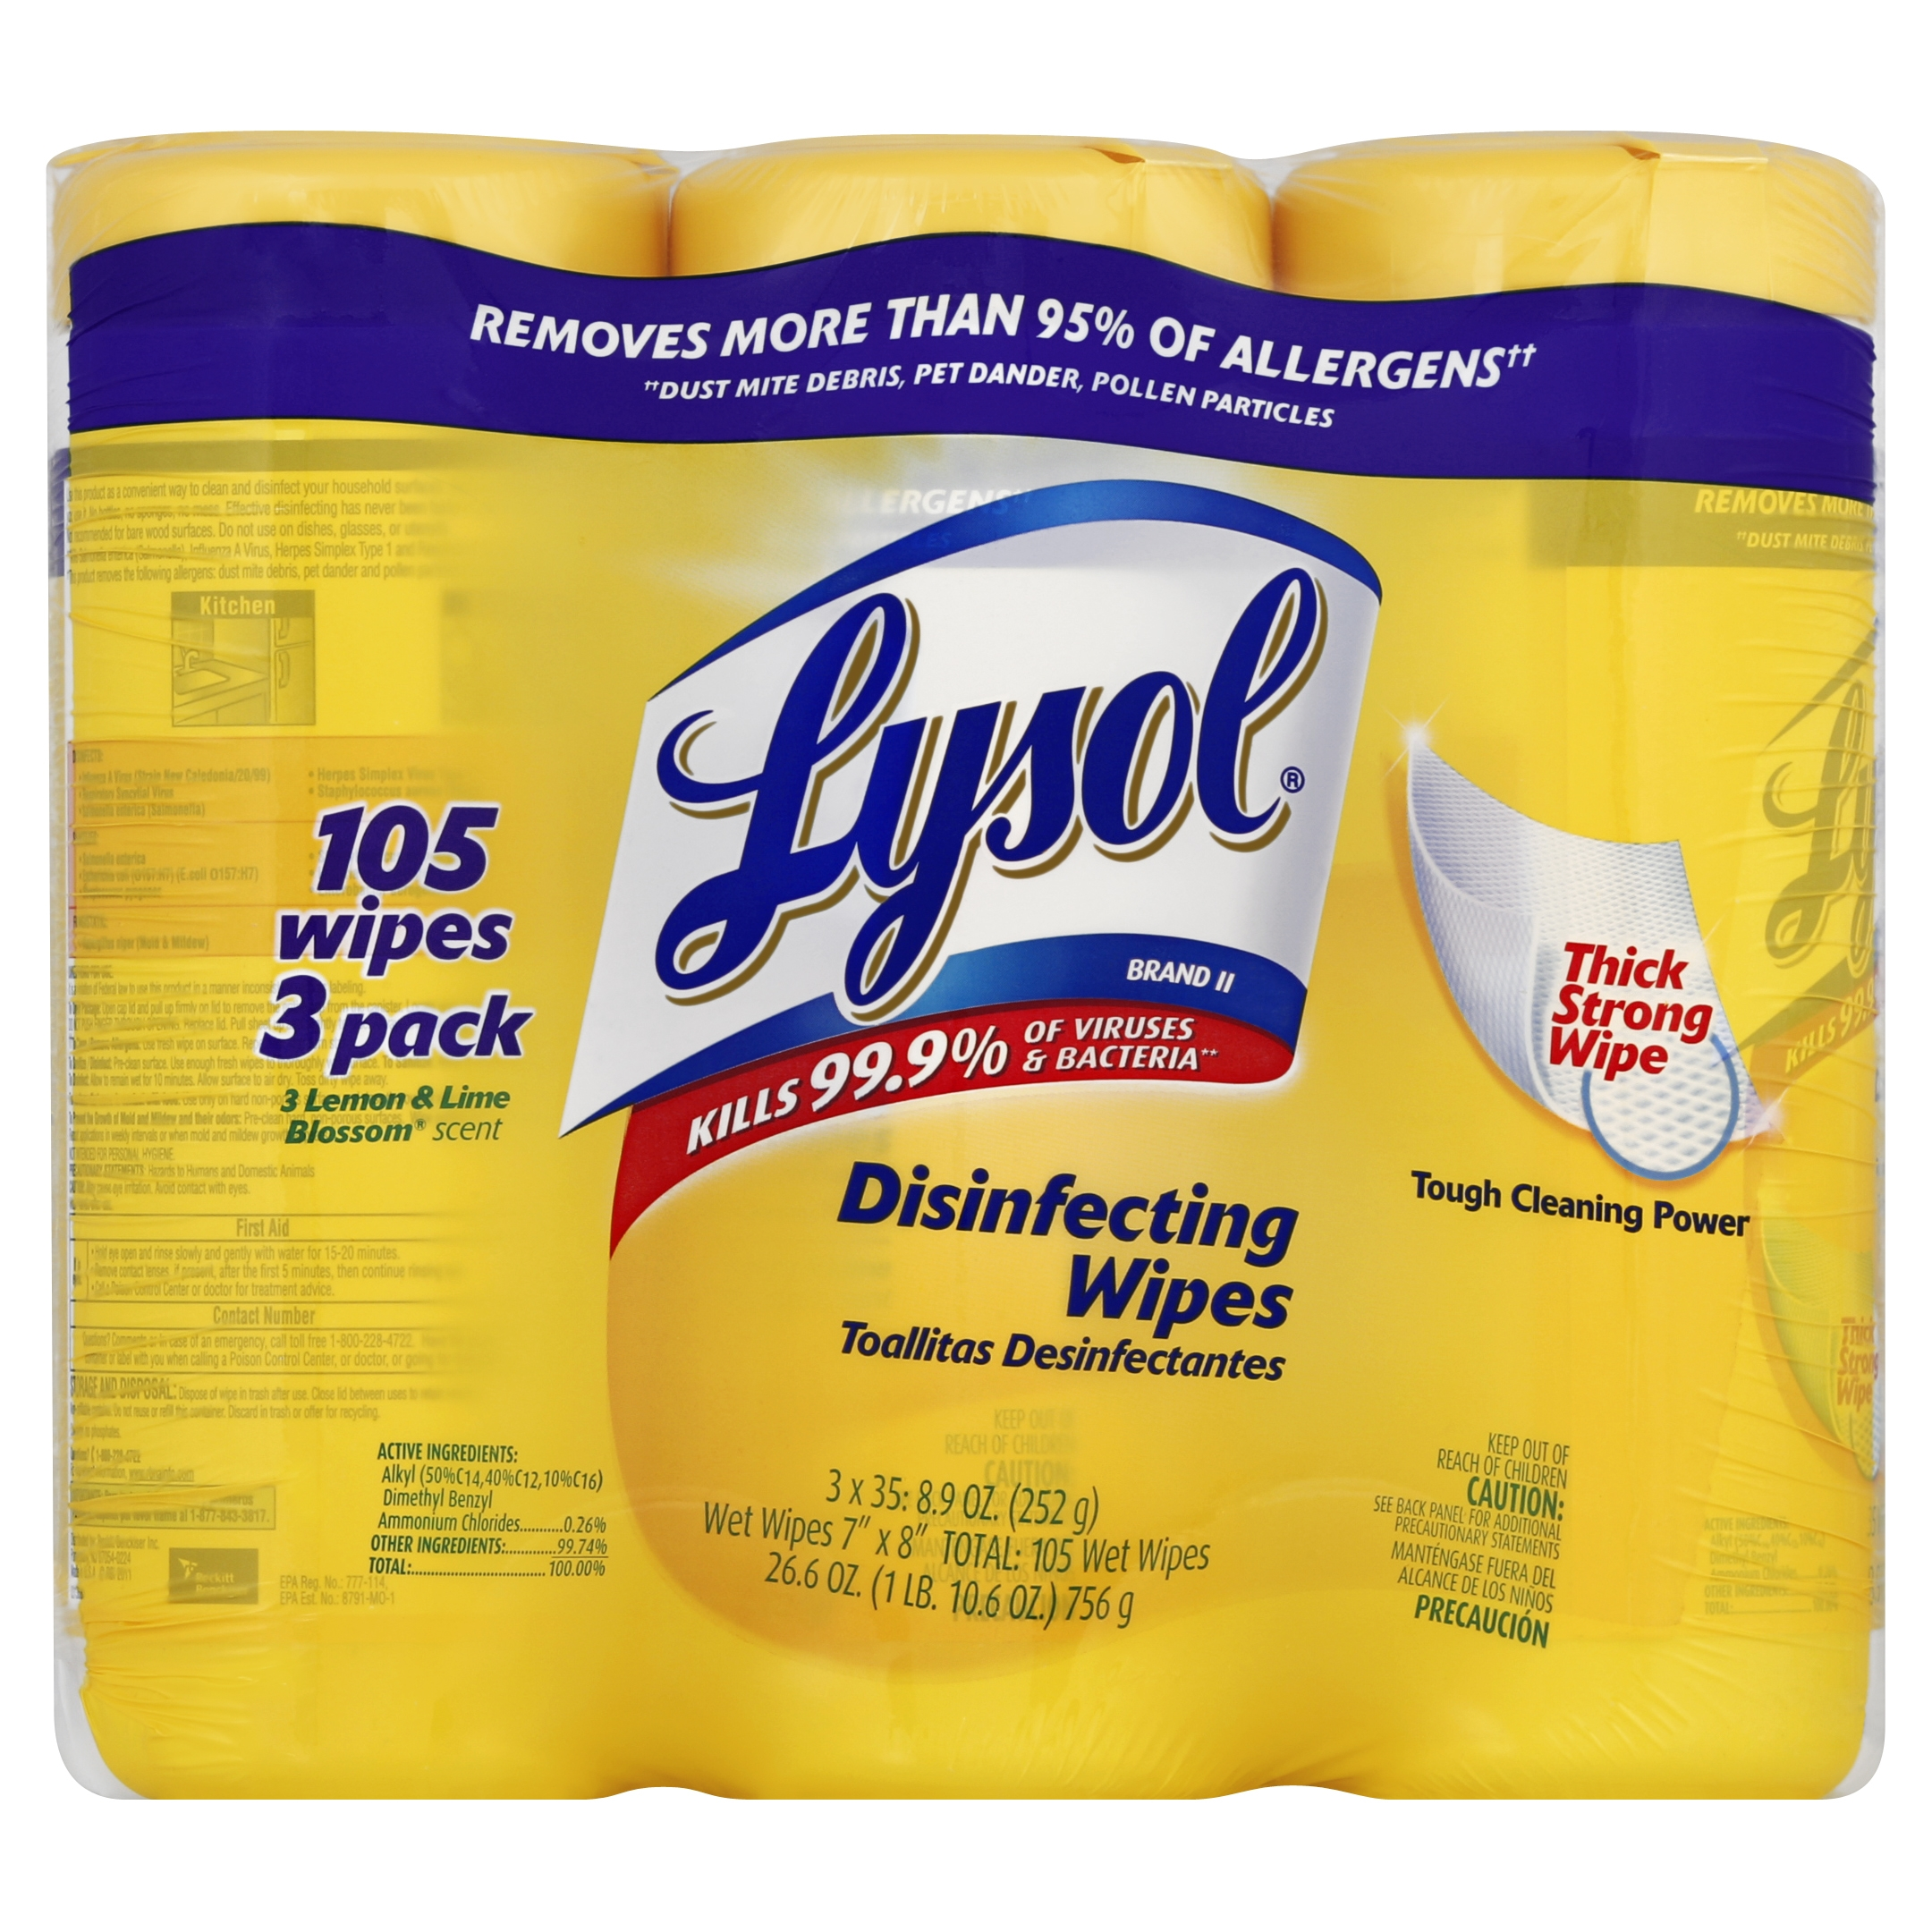 Lysol Disinfecting Wipes Value Pack, Lemon and Lime Blossom, 105 Count